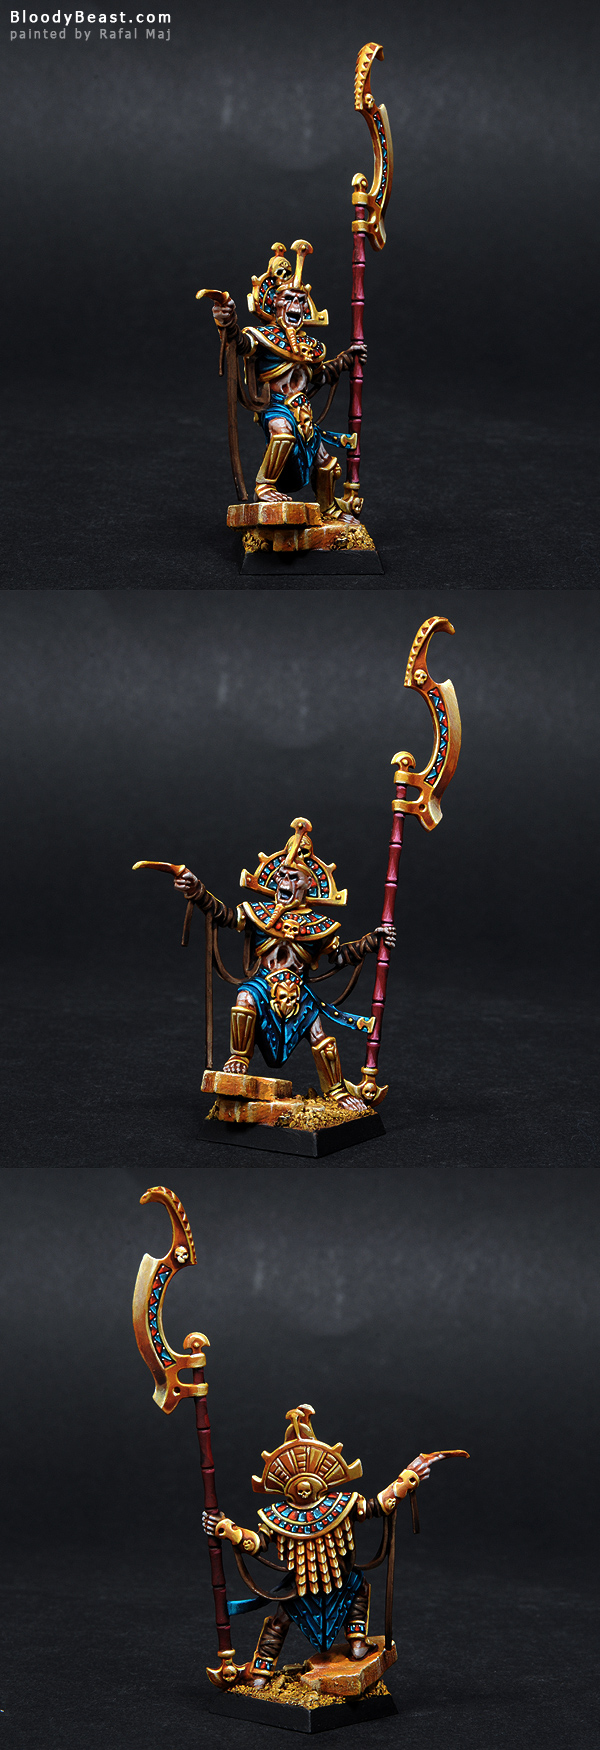 Tomb King with Great Weapon painted by Rafal Maj (BloodyBeast.com)